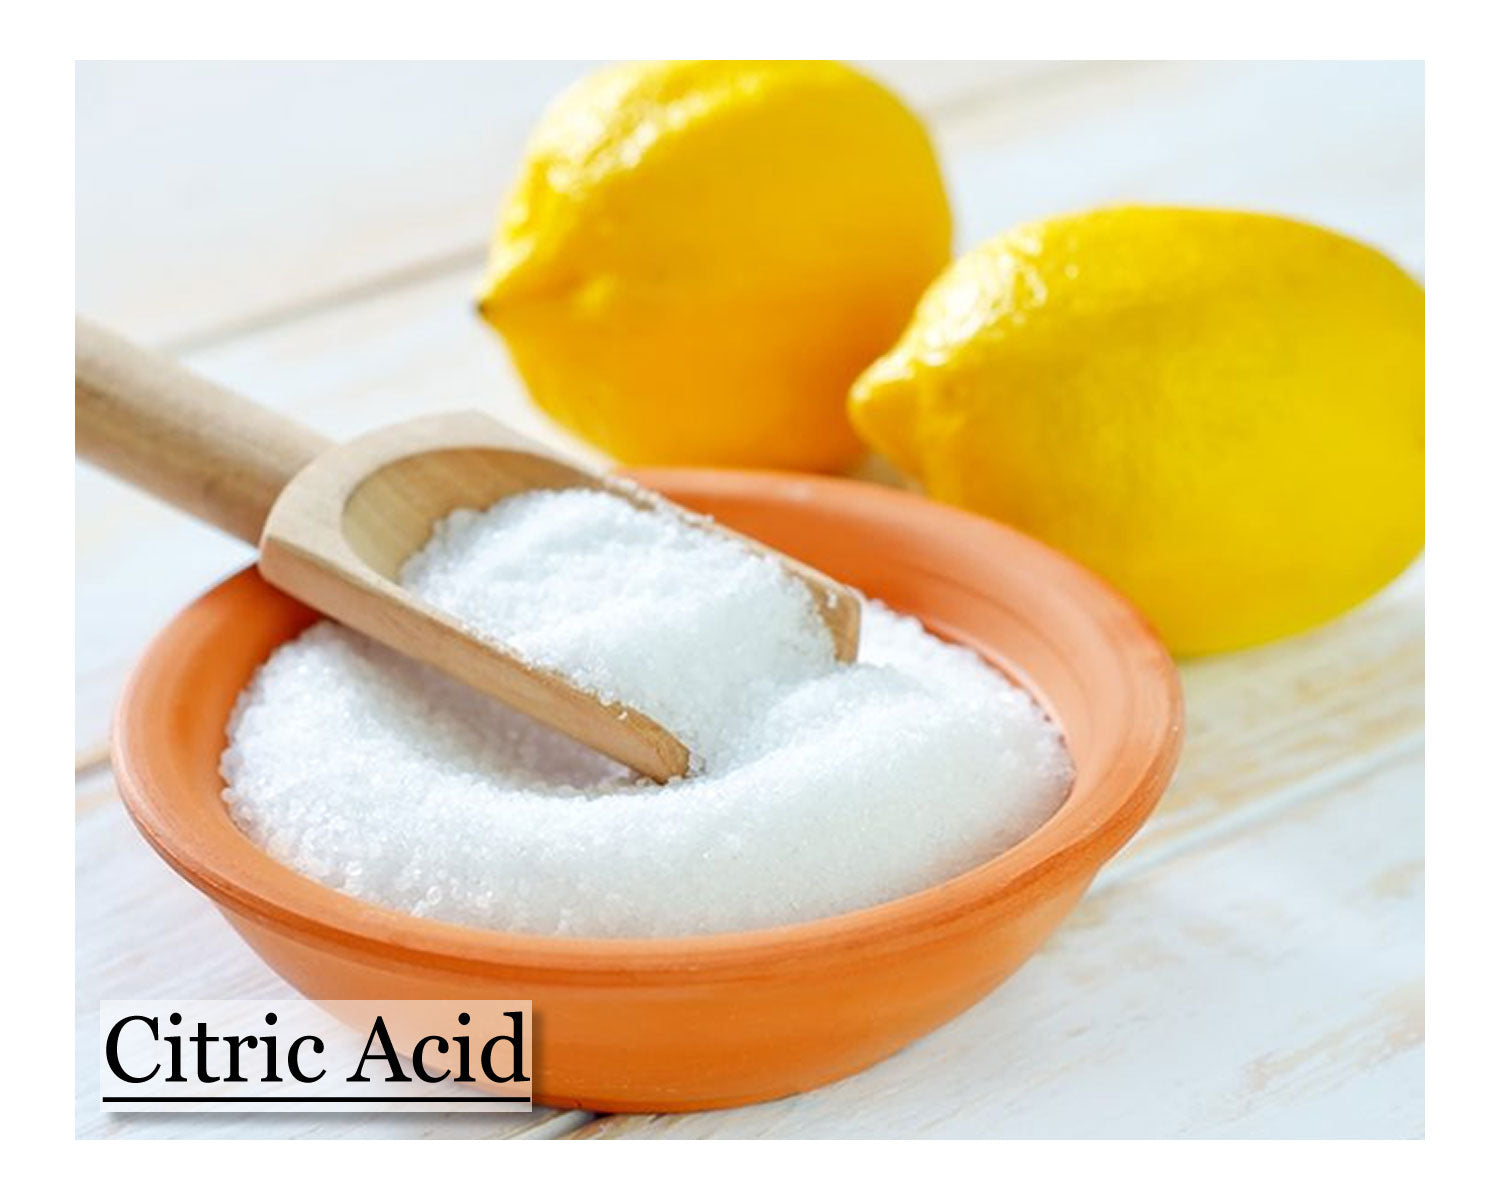 Citric Acid - 2 oz